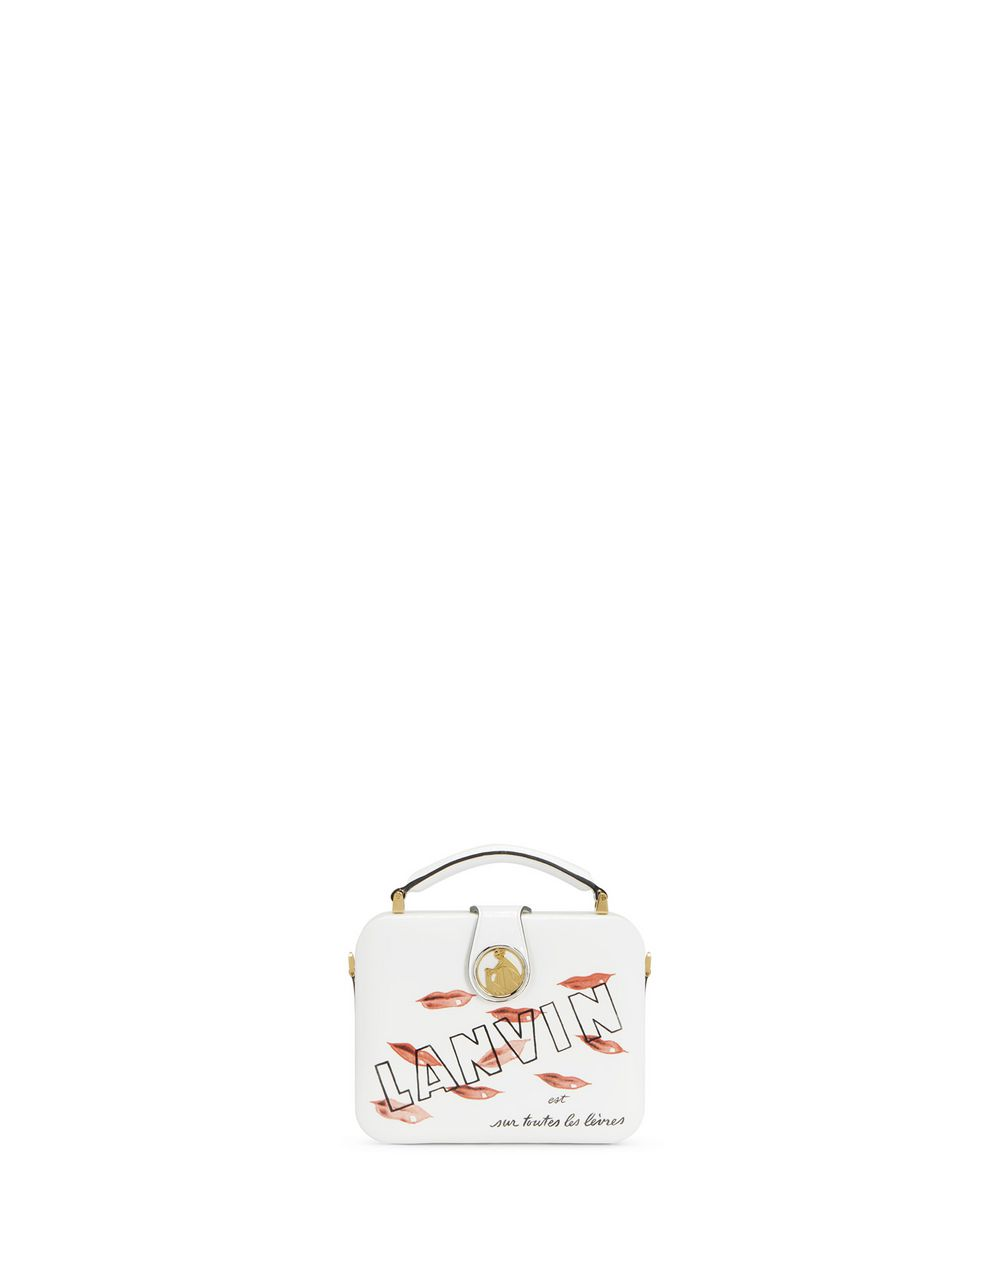 BENTO MINAUDIÈRE IN PATENT CALFSKIN LEATHER WITH LIPSTICK PRINT - Lanvin